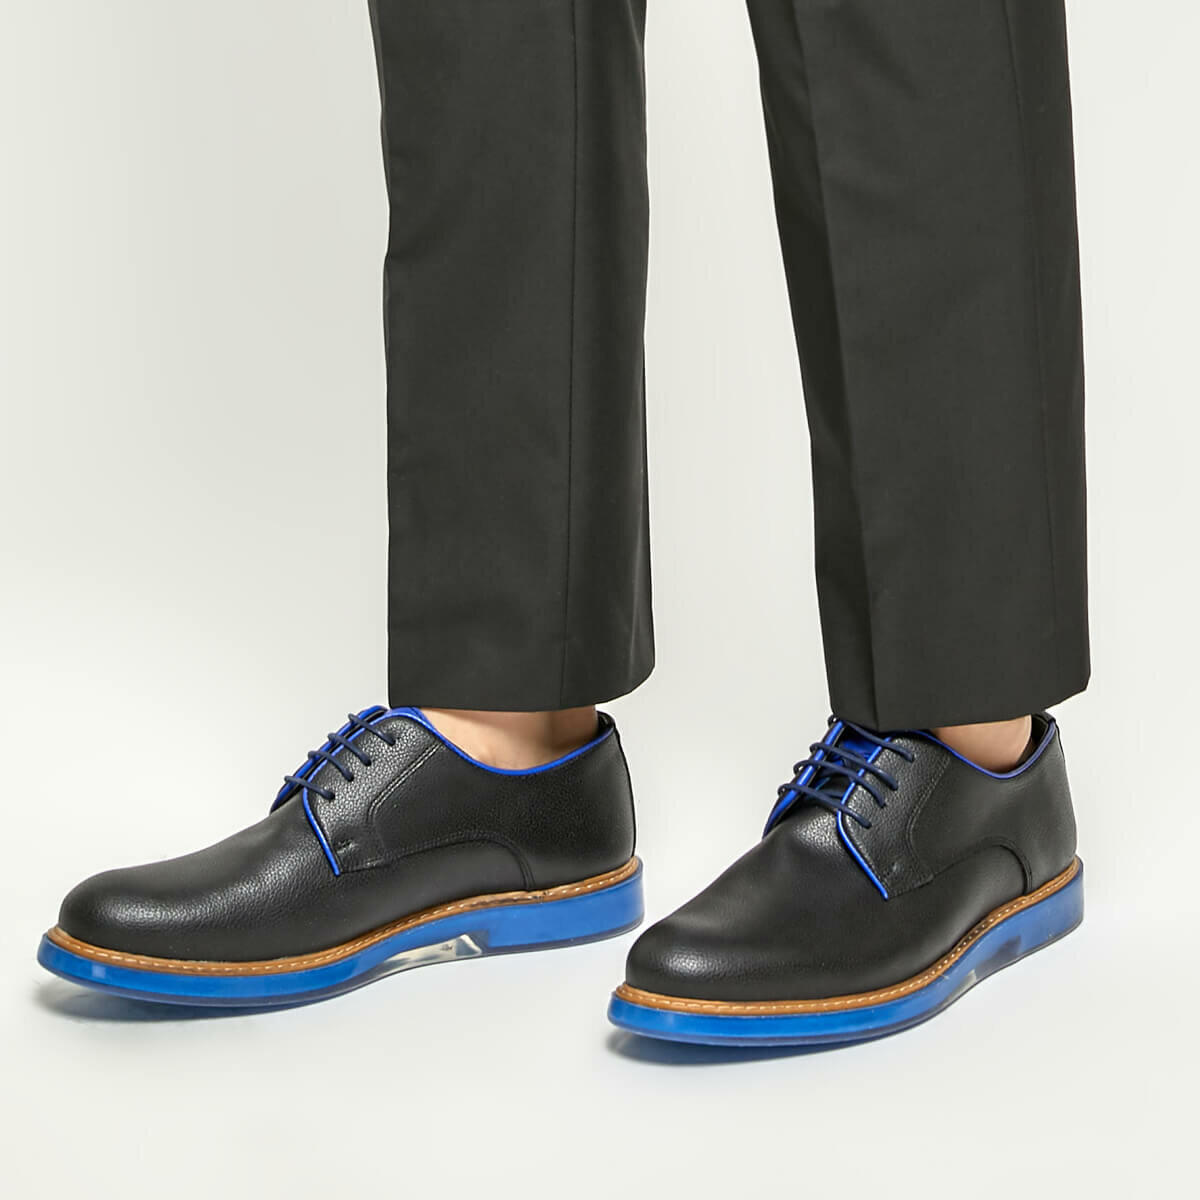 FLO 51535-1 Black Men 'S Classic Shoes-Styles